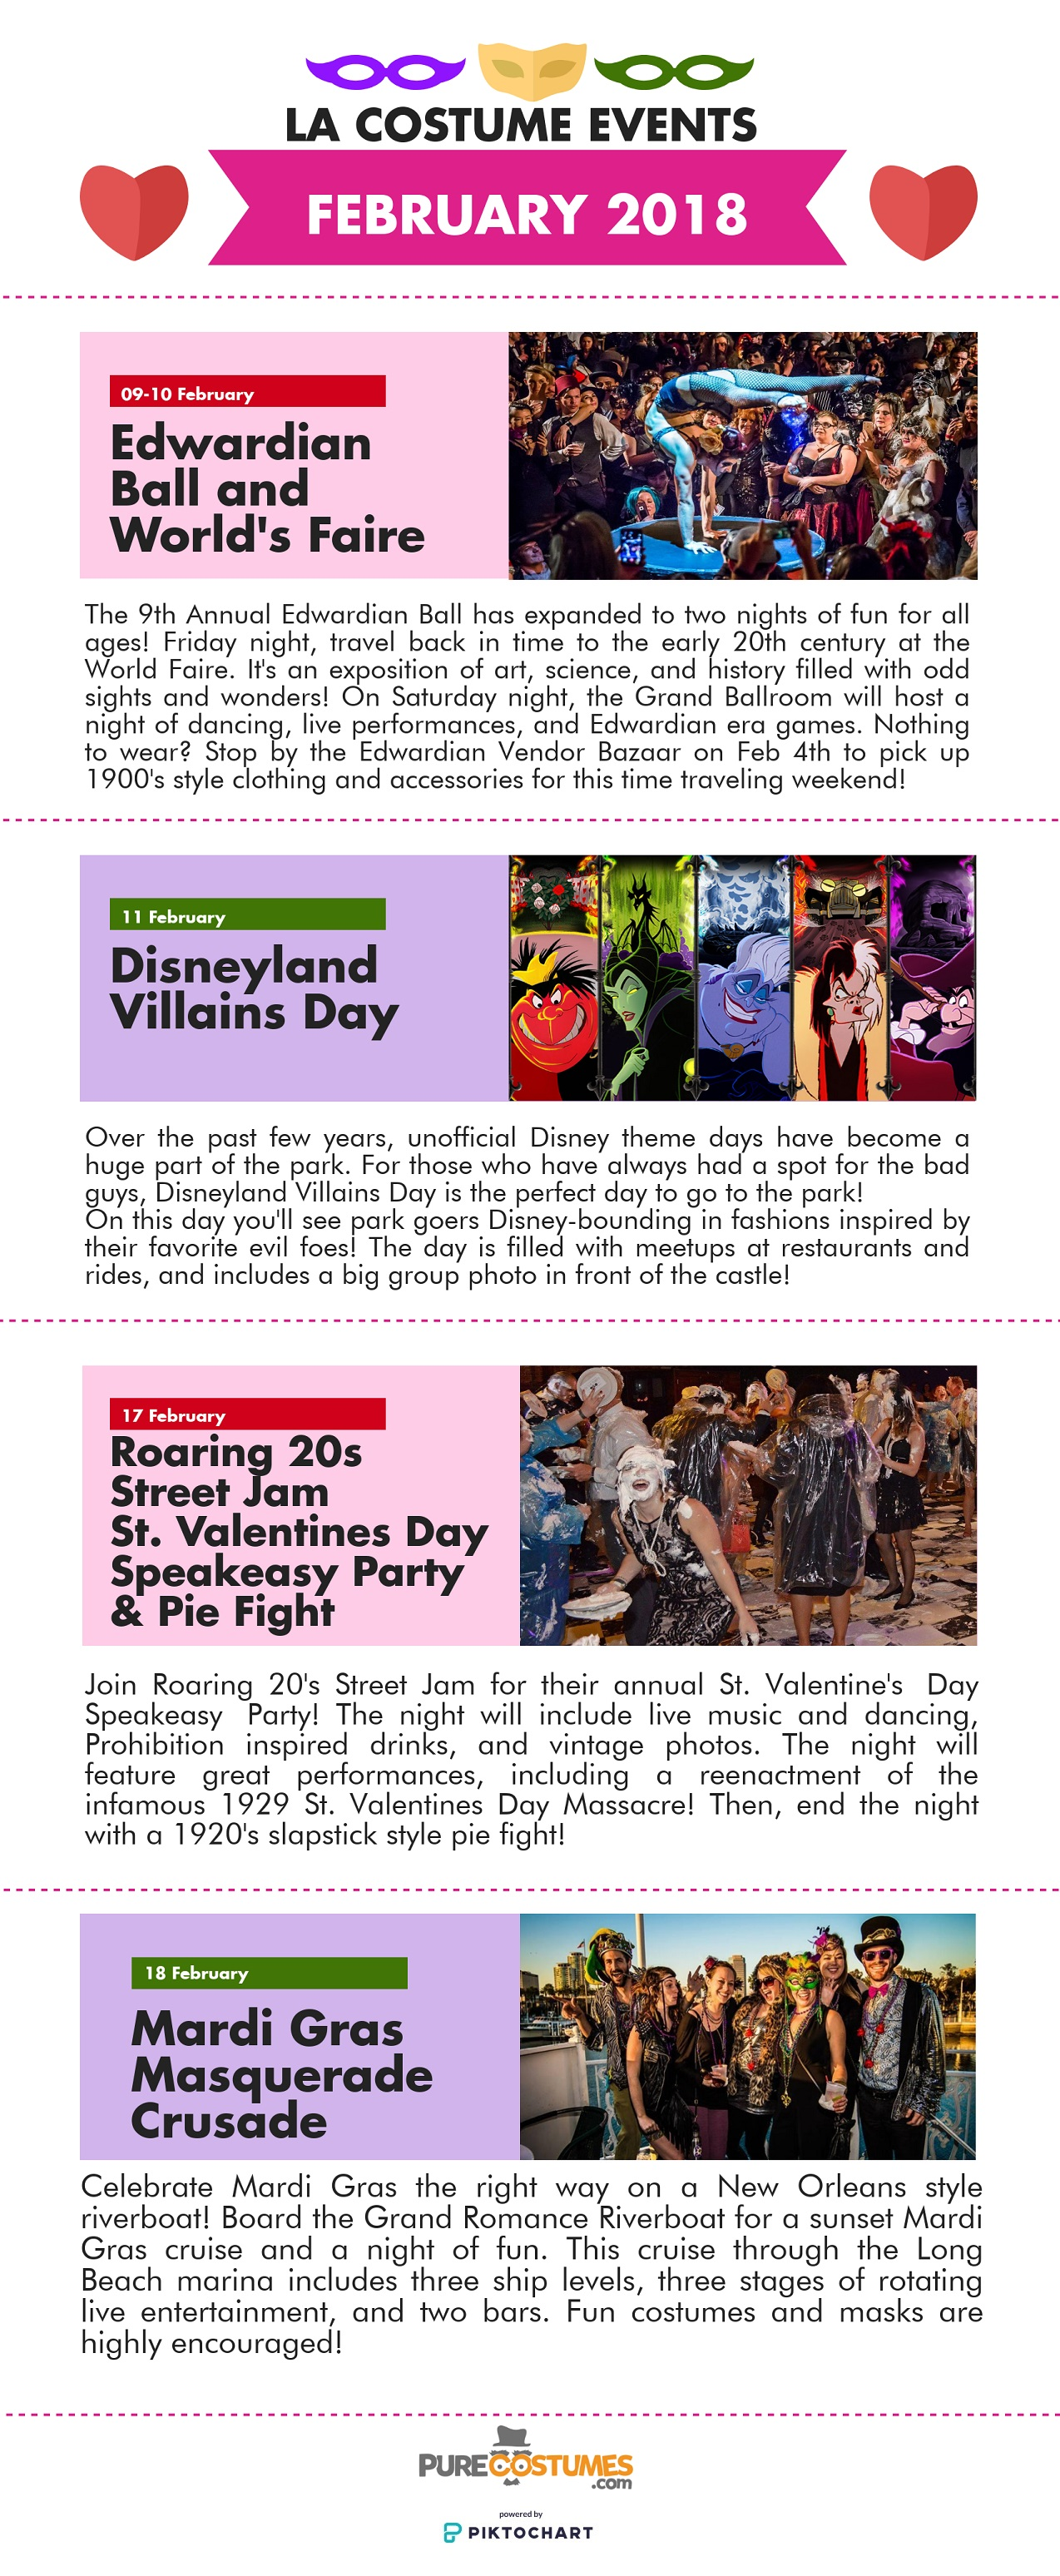 Los Angeles Costume Events February 2018